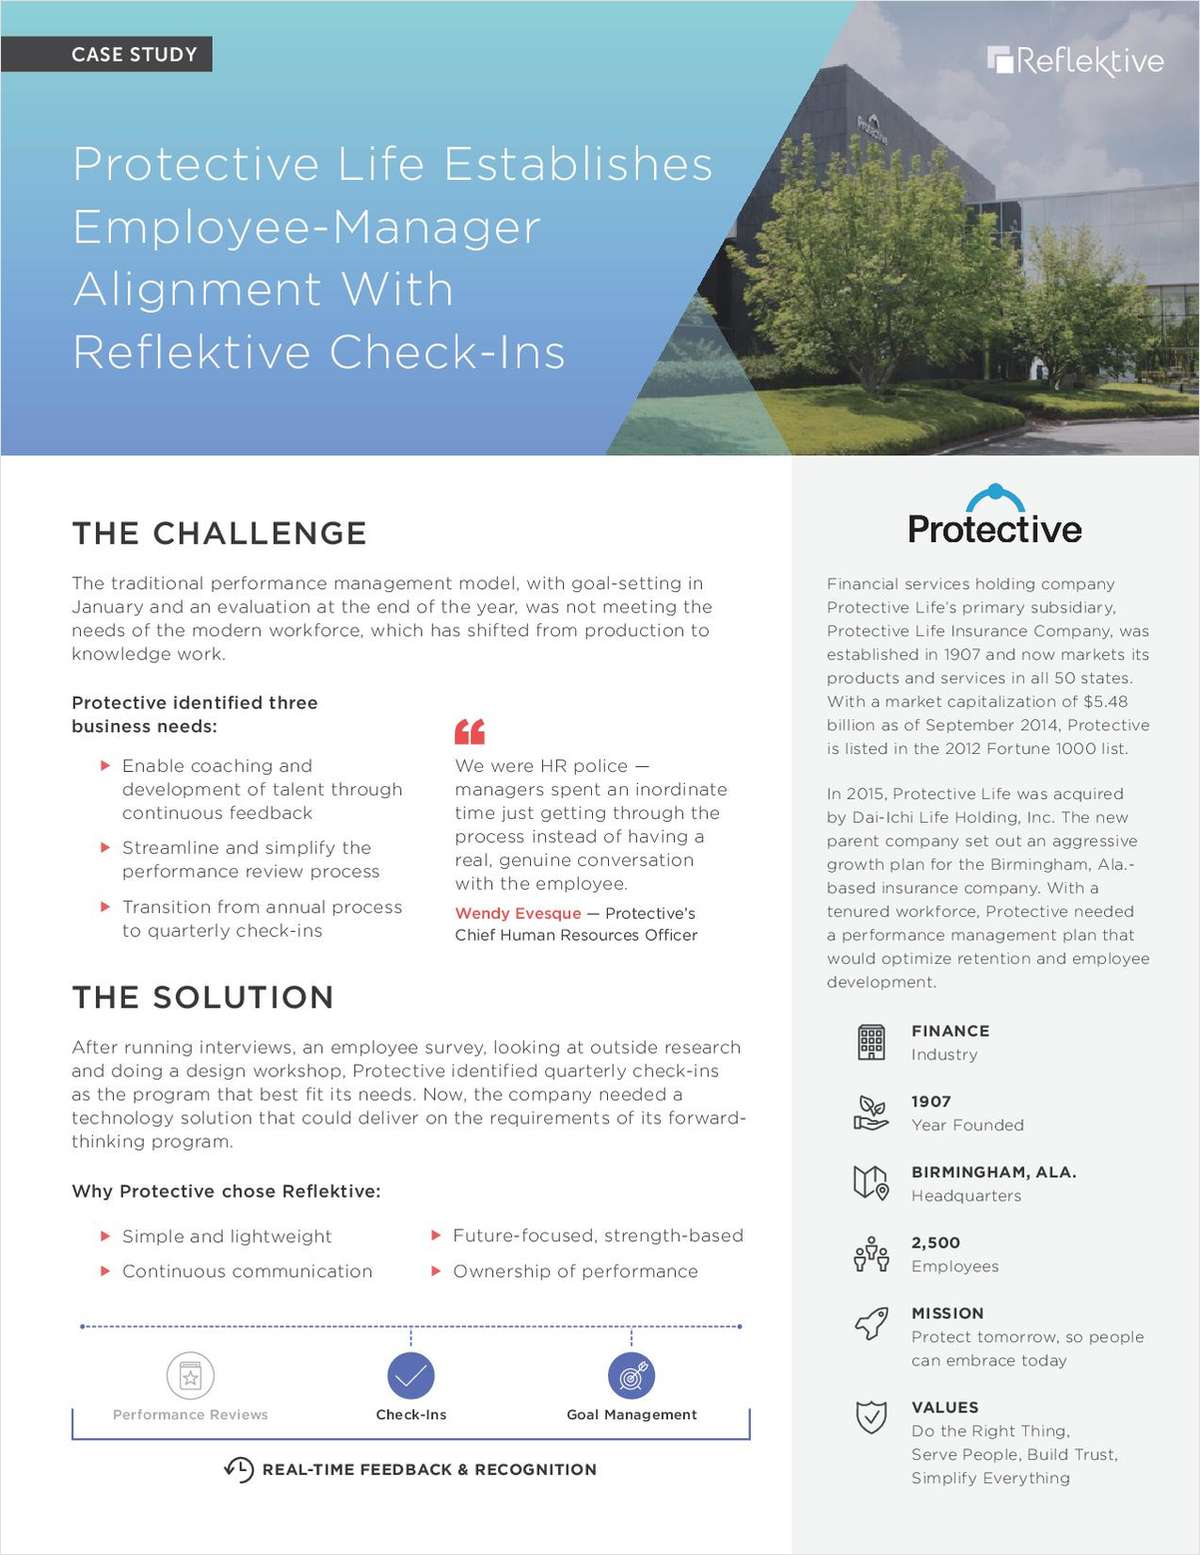 Protective Life Establishes Employee-Manager Alignment With Check-Ins